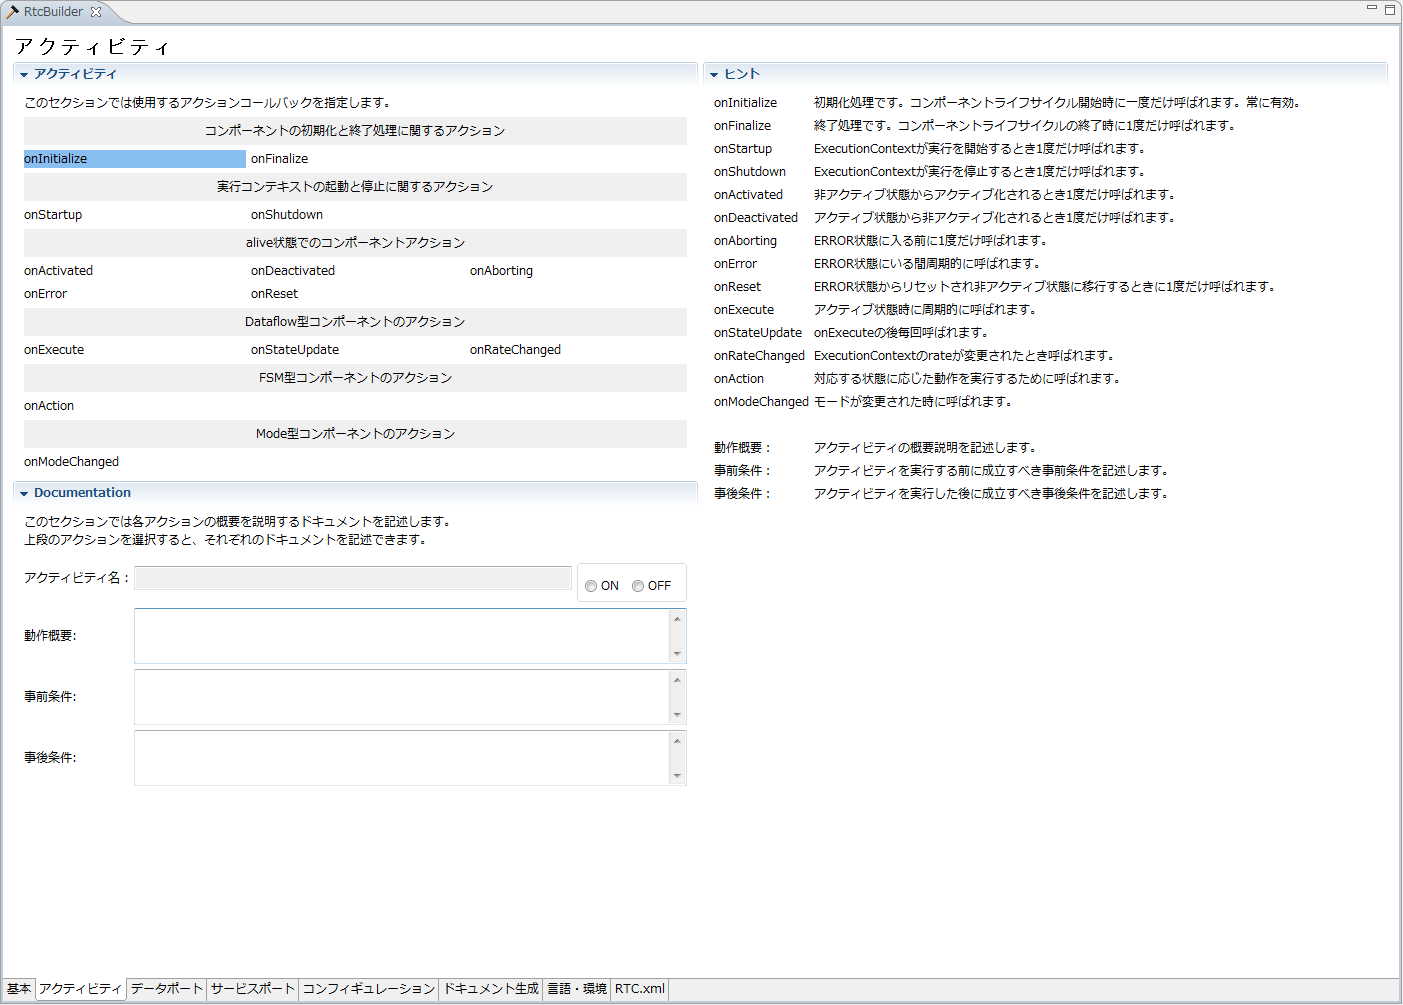 fig3-4ActivityProfile_ja.png